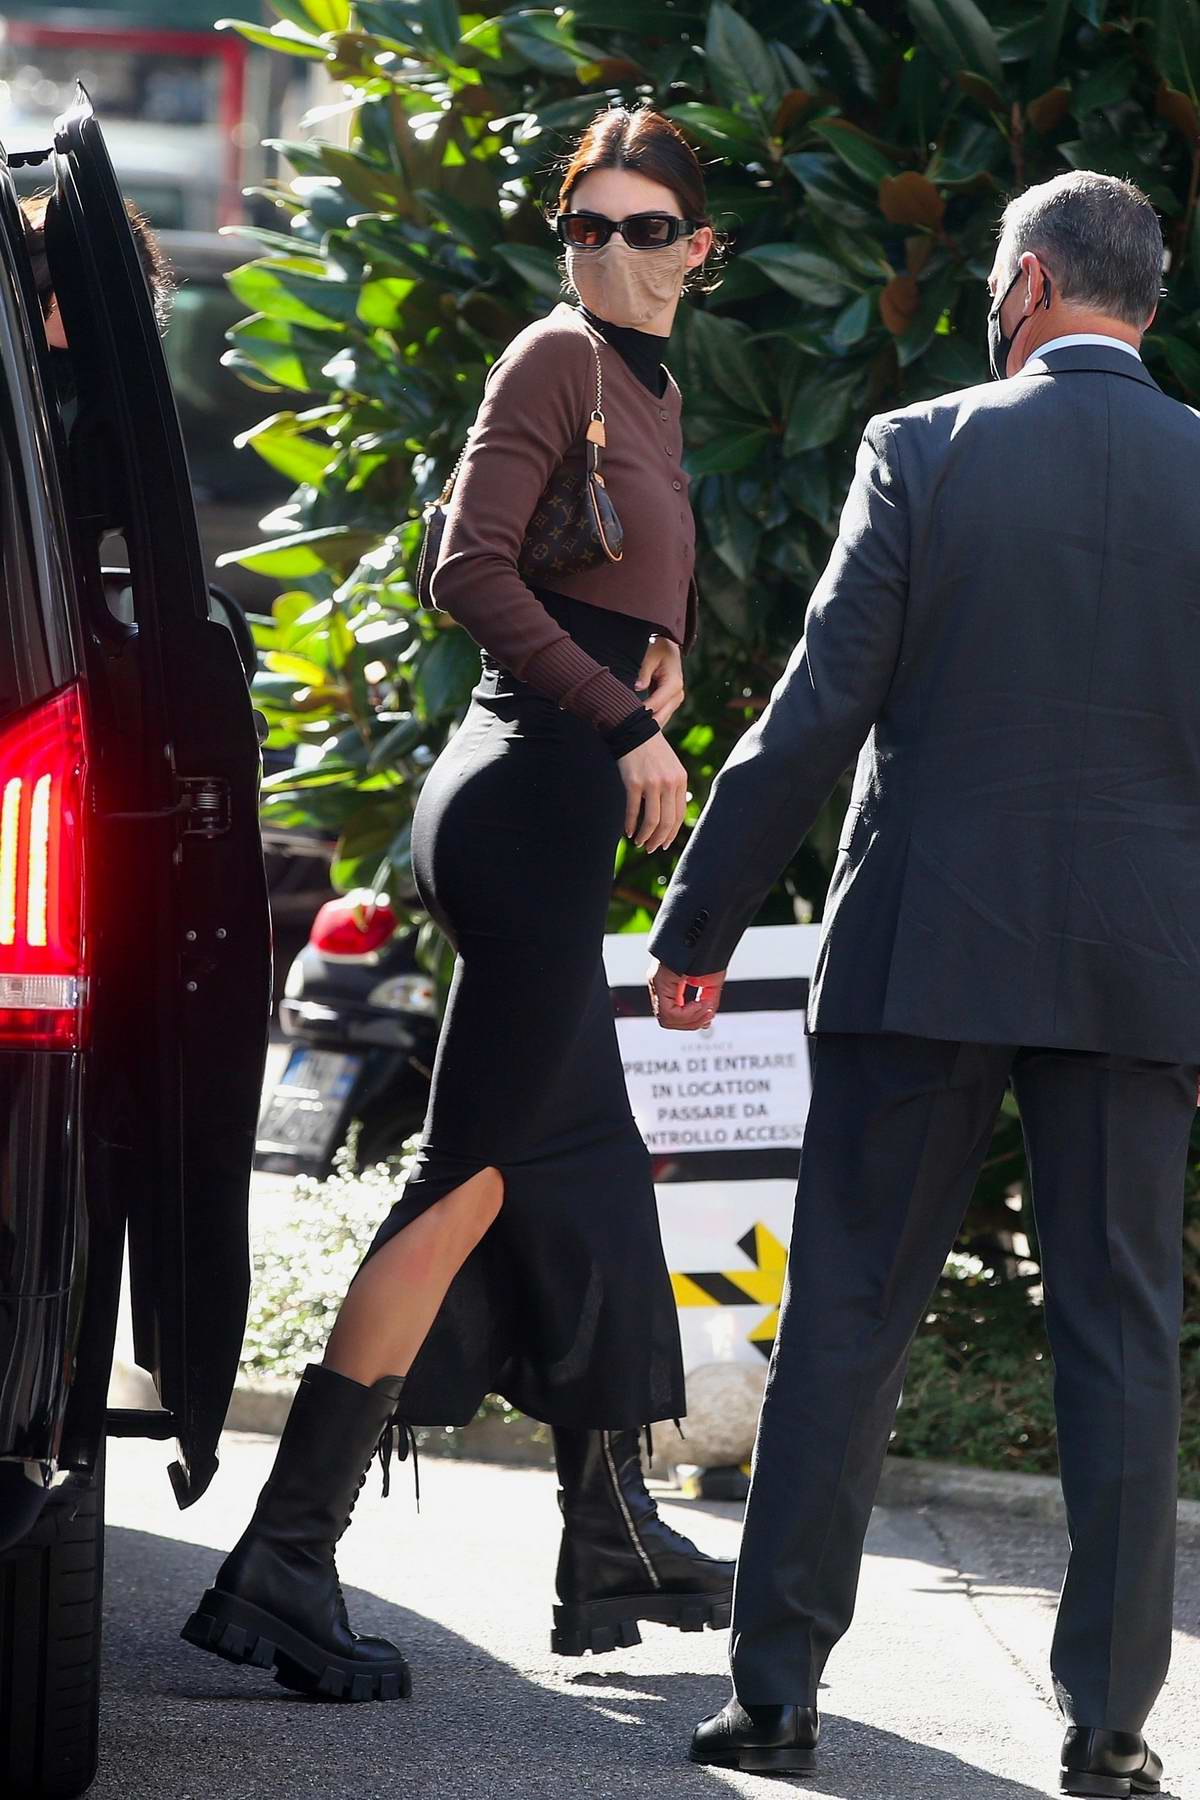 Kendall Jenner looks fashionable while arriving for a Versace photoshoot during Milan Fashion Week in Milan, Italy